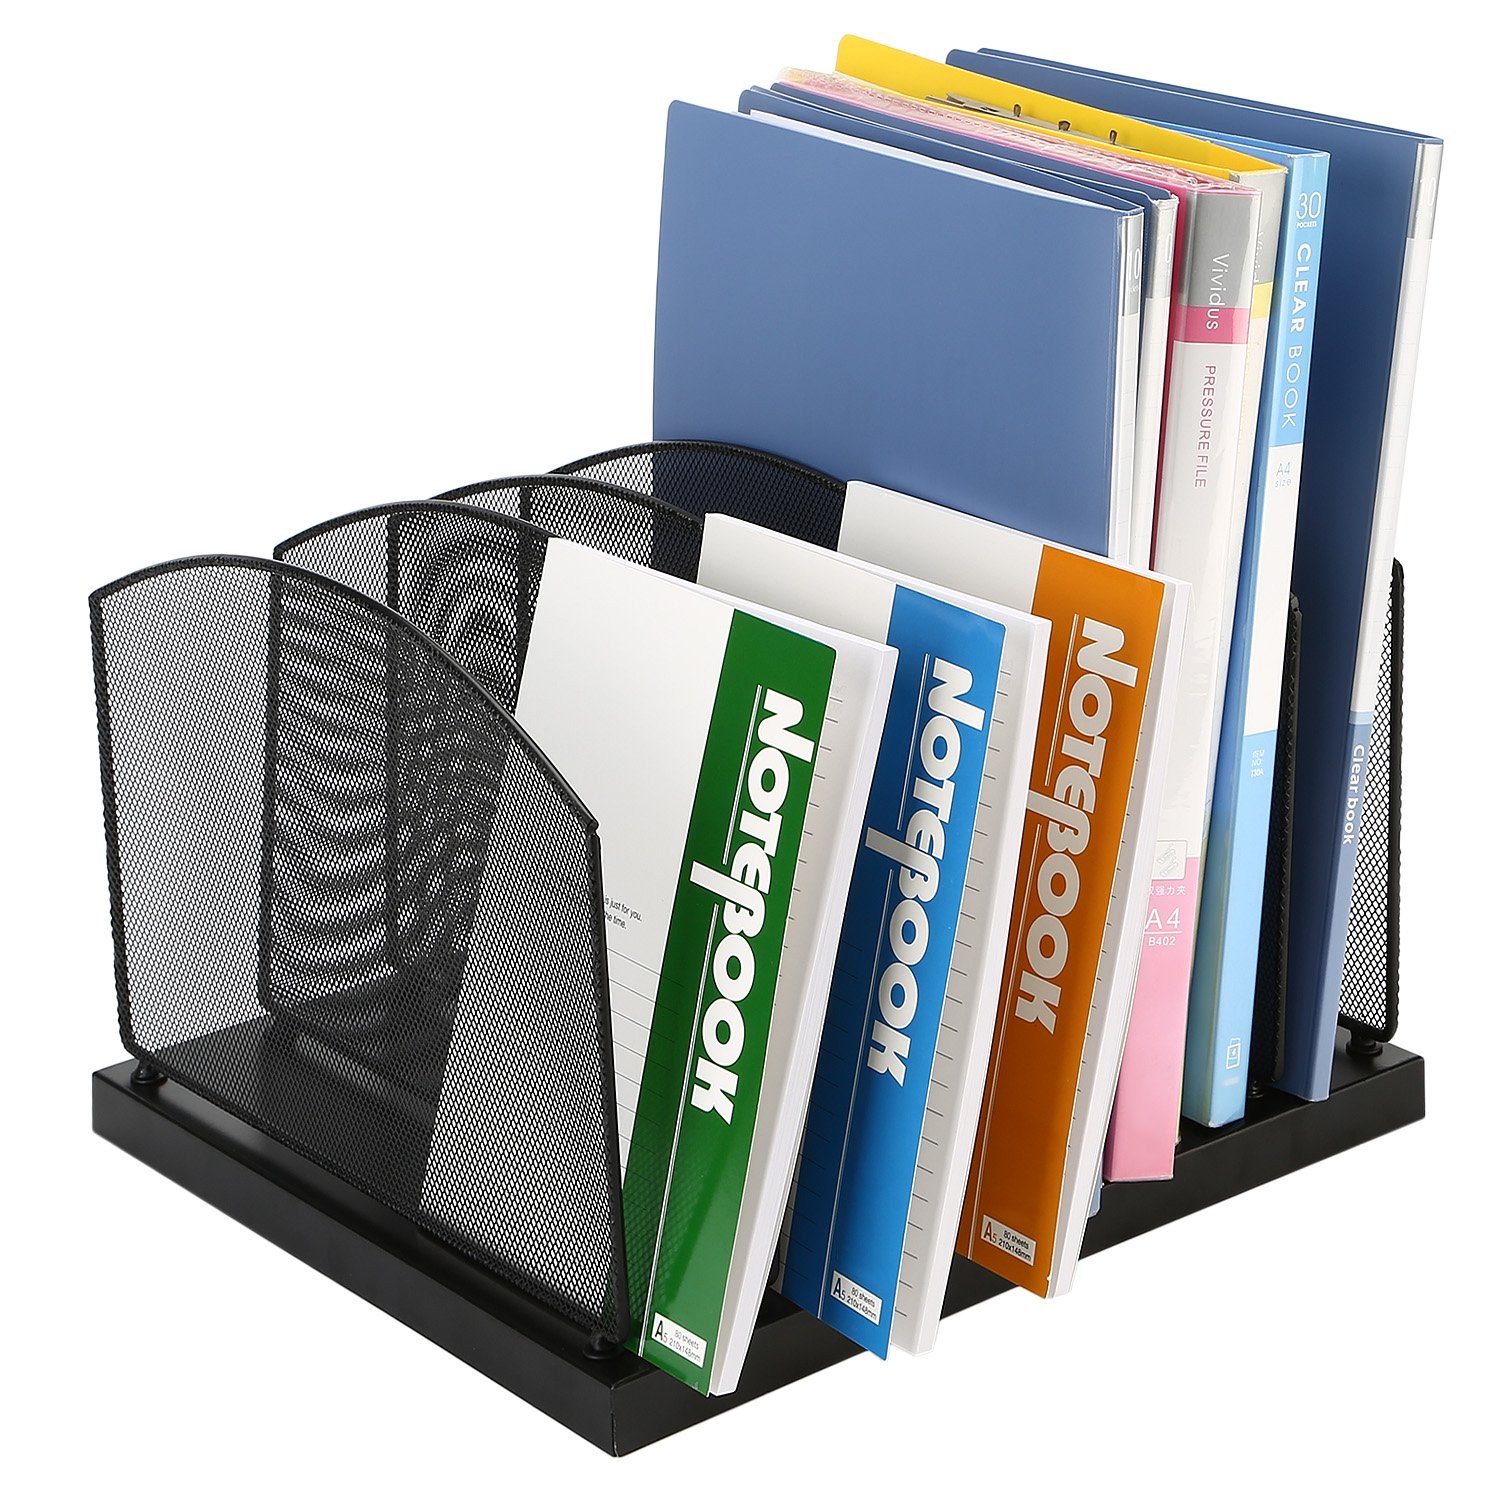 CRUODA Mesh Desktop File Folder Organizer with 6 Tiered Sections for Documents, Magazines, Notebooks, Black